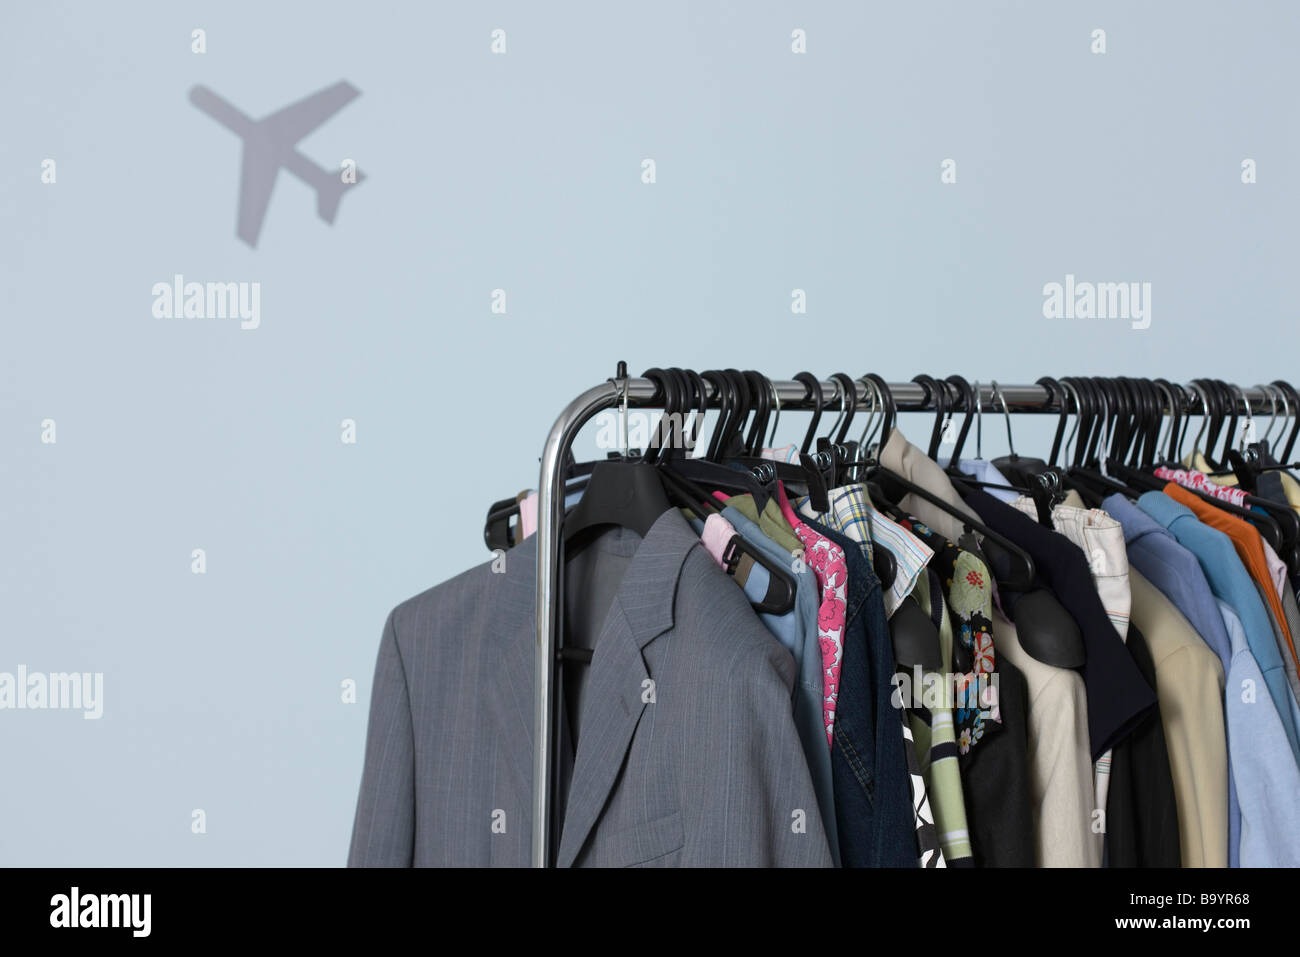 Rack of clothing, airplane shape in background - Stock Image